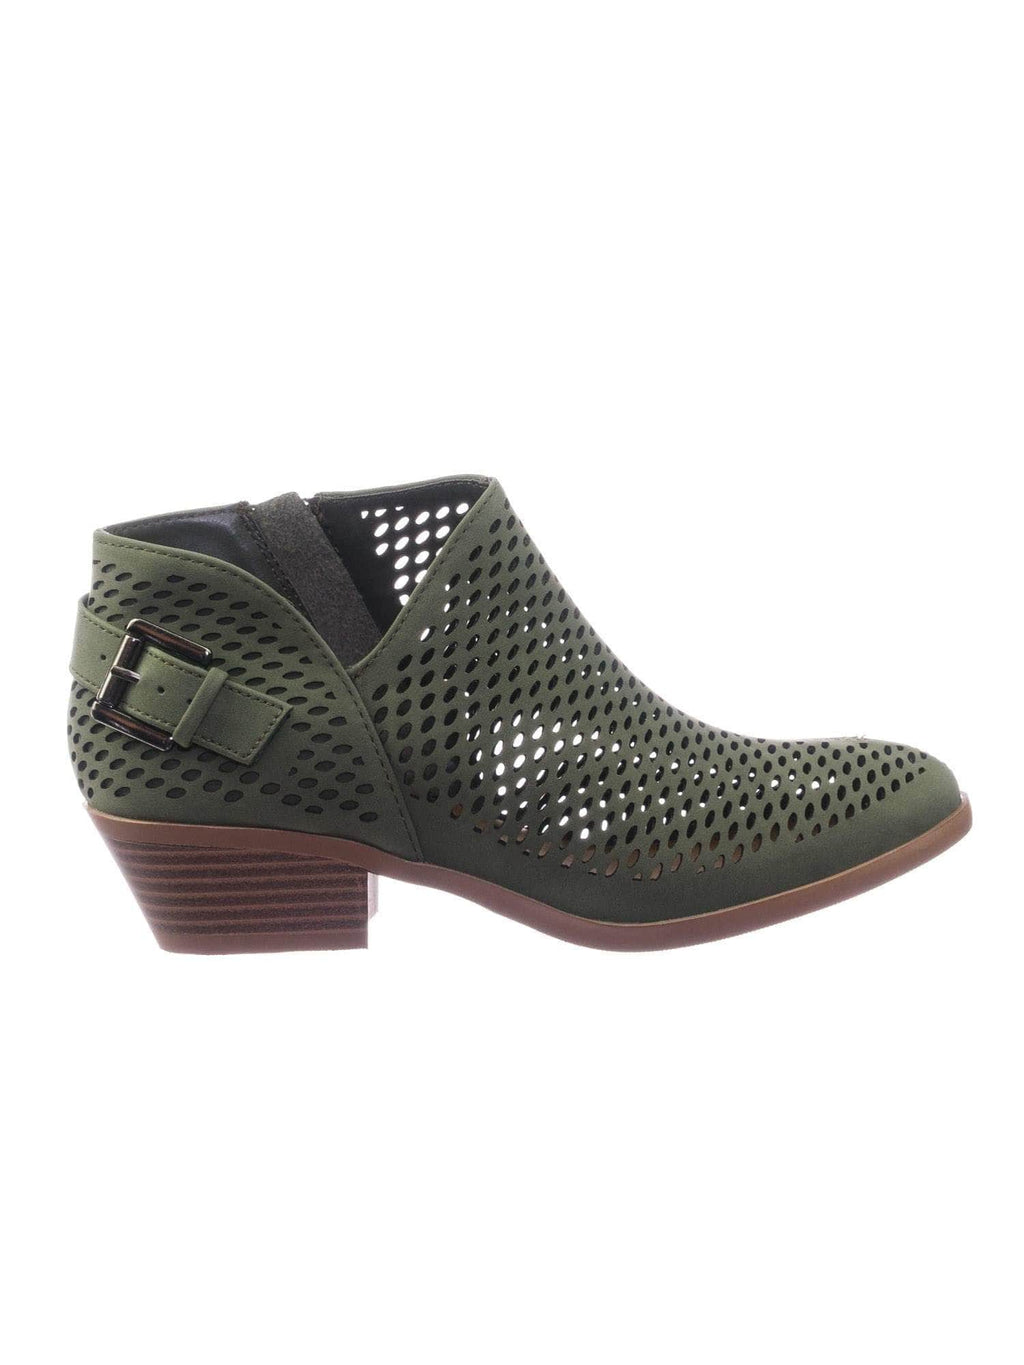 Riding GreyNb Asymmetrical Perforated Cutout Low Block Heel Ankle Bootie w Side Slit